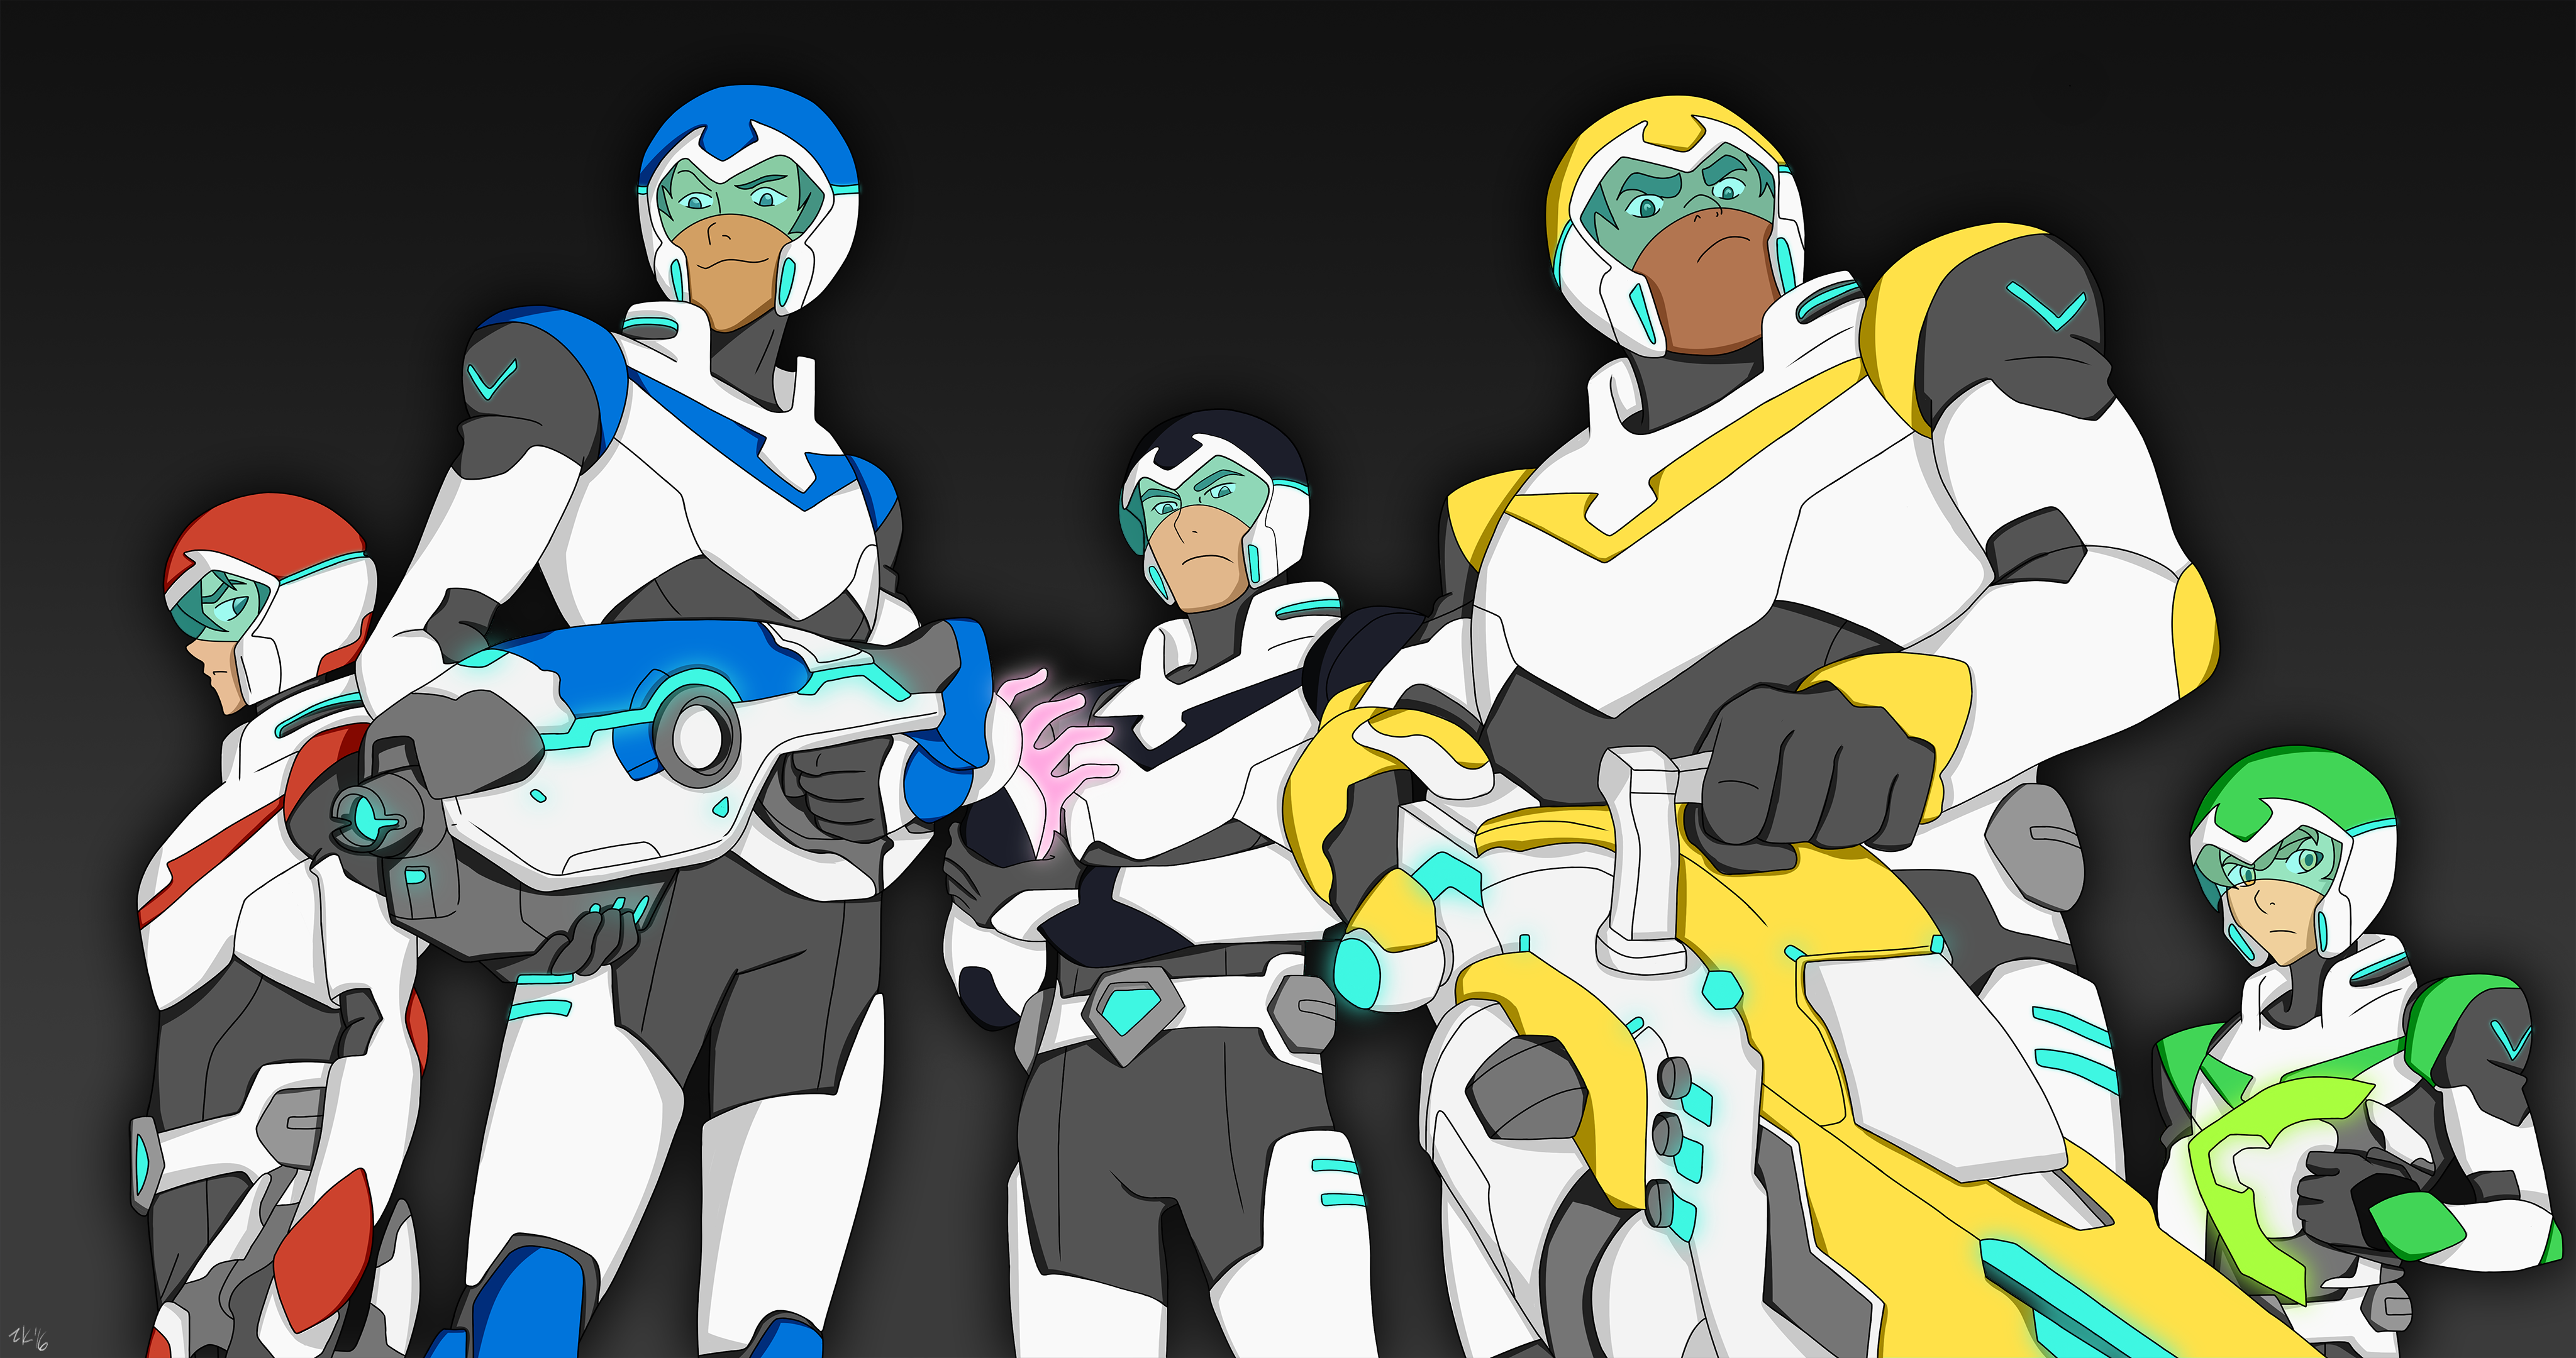 voltron force assembled 4k res background by puppyisms on